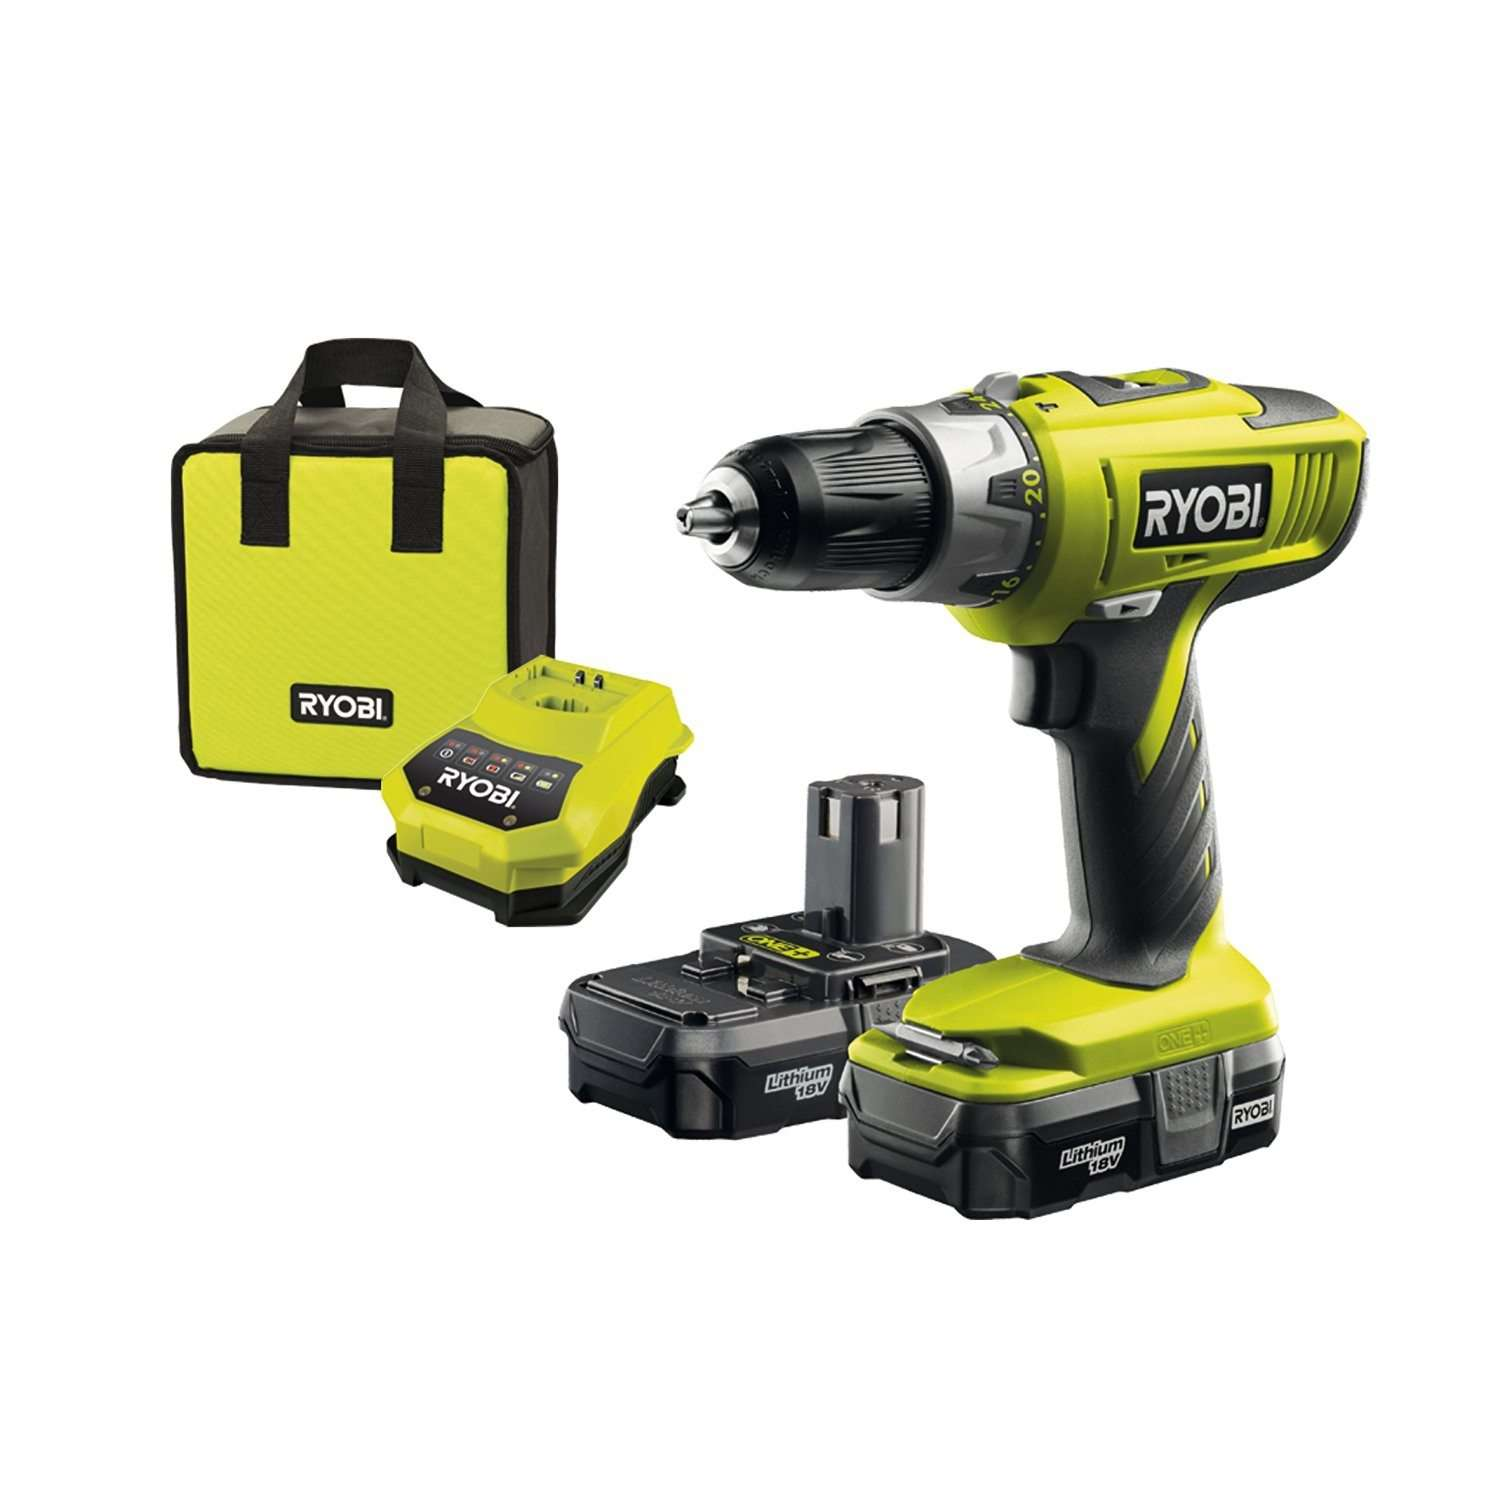 ryobi-one-cordless-combi-drill-with-2-x-1-3a-batteries-and-45-minute-charger